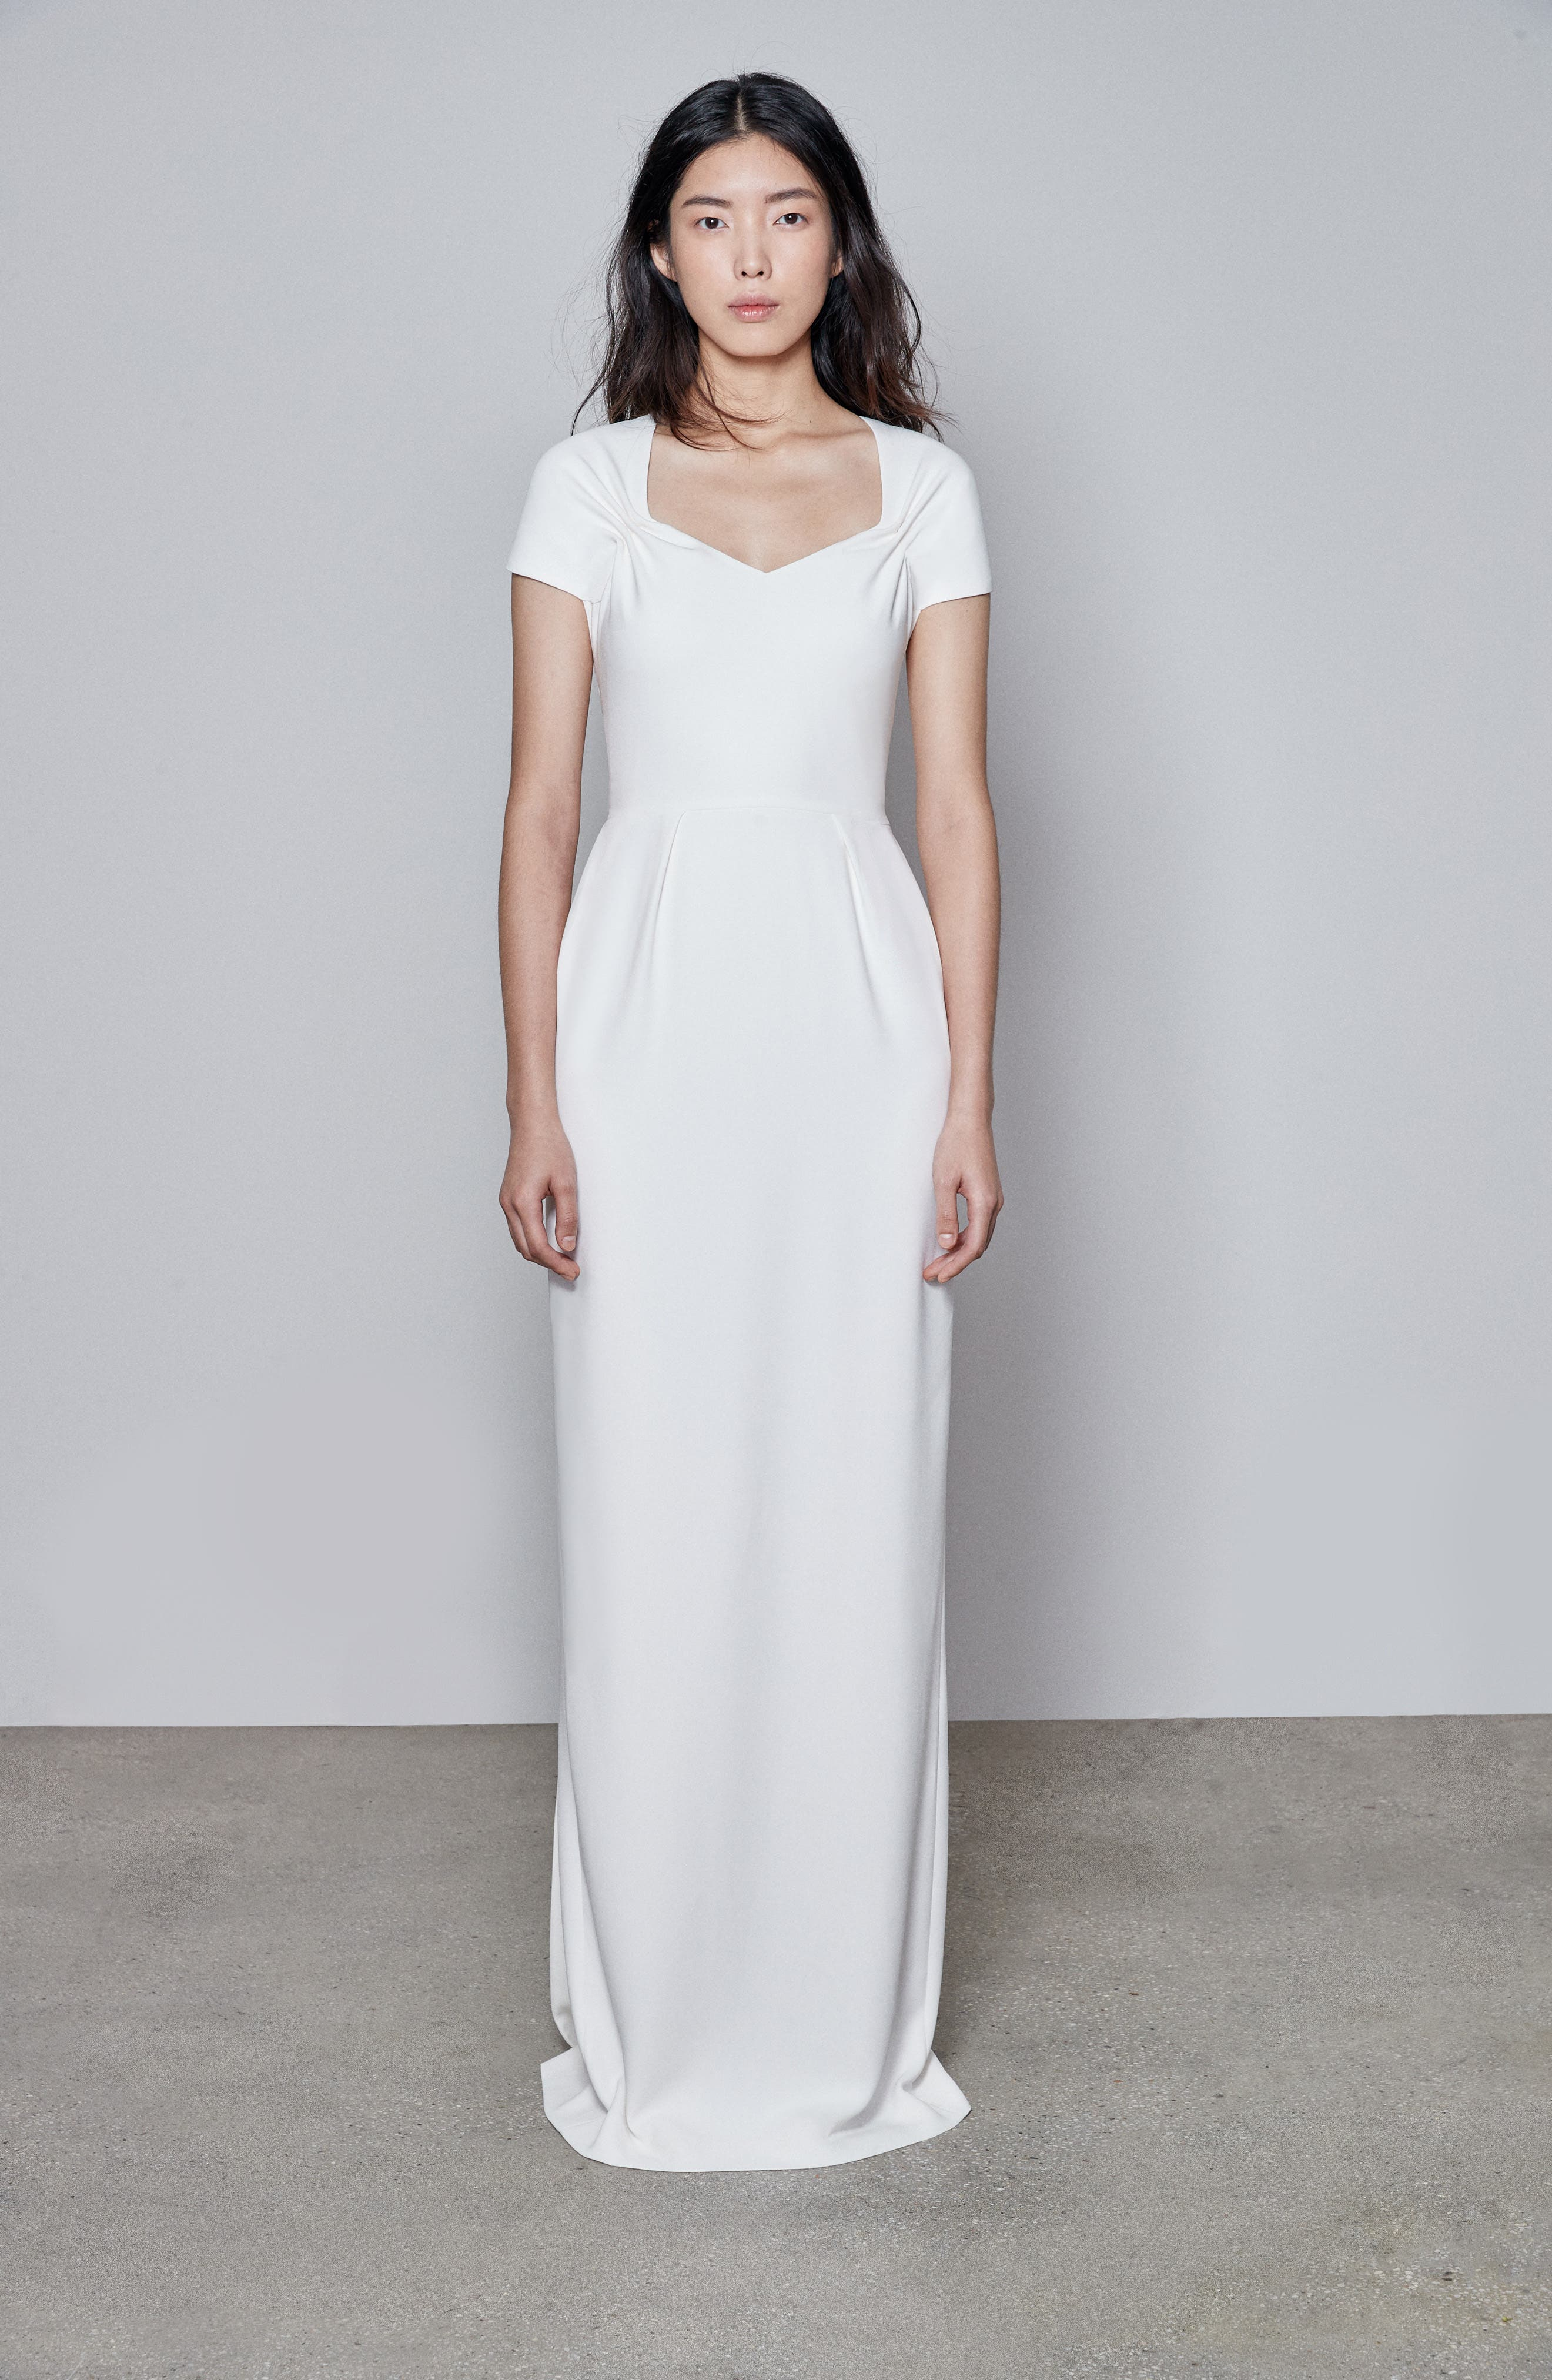 Stella Mccartney F18 Rose Cap Sleeve Wedding Dress, US / 44 IT - White